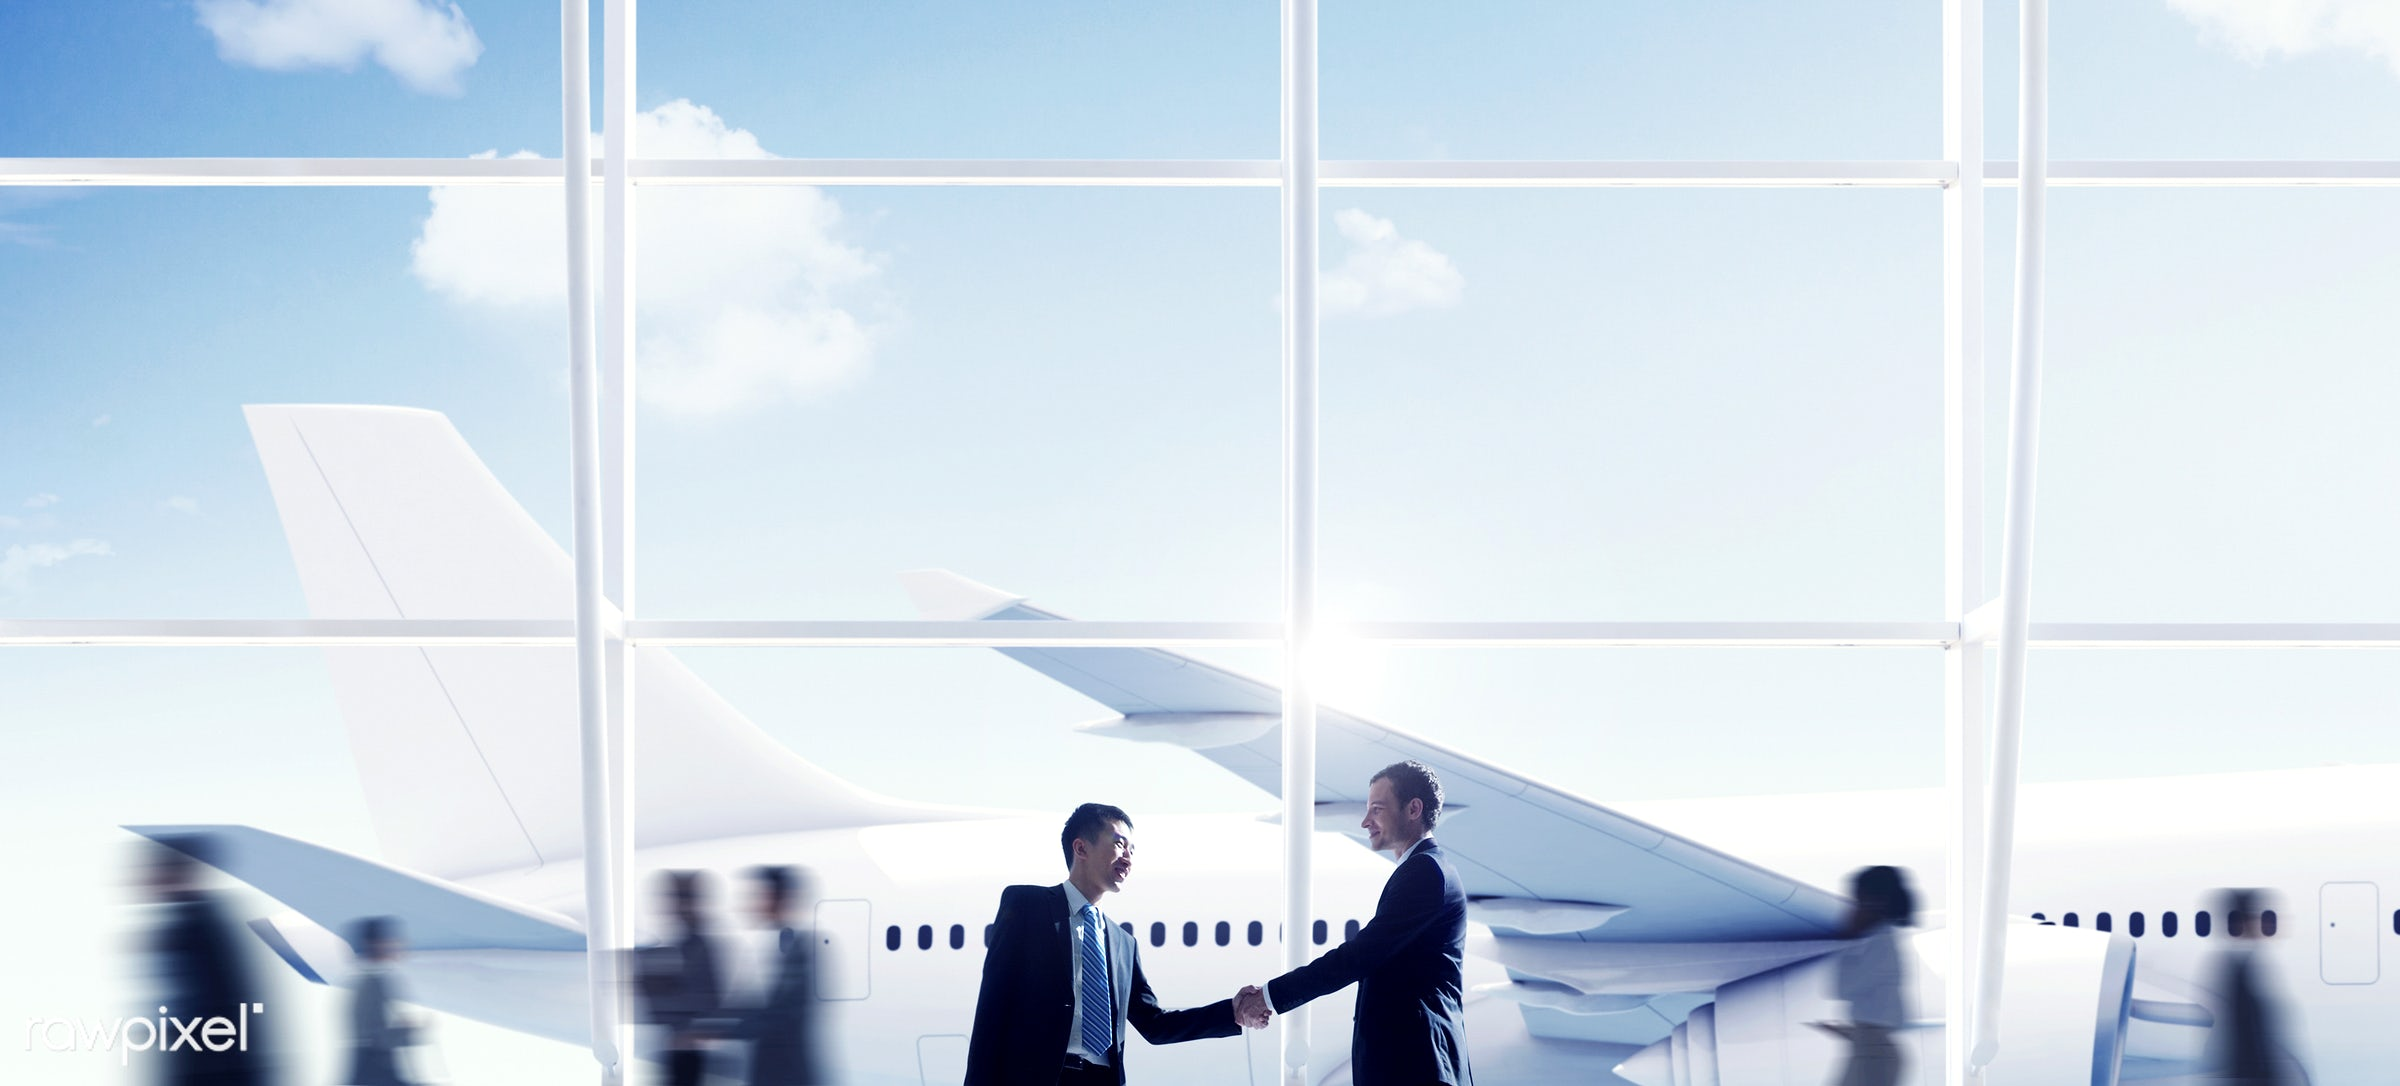 agreement, aircraft, airplane, airport, business people, business travel, businessmen, businesswomen, cheerful,...